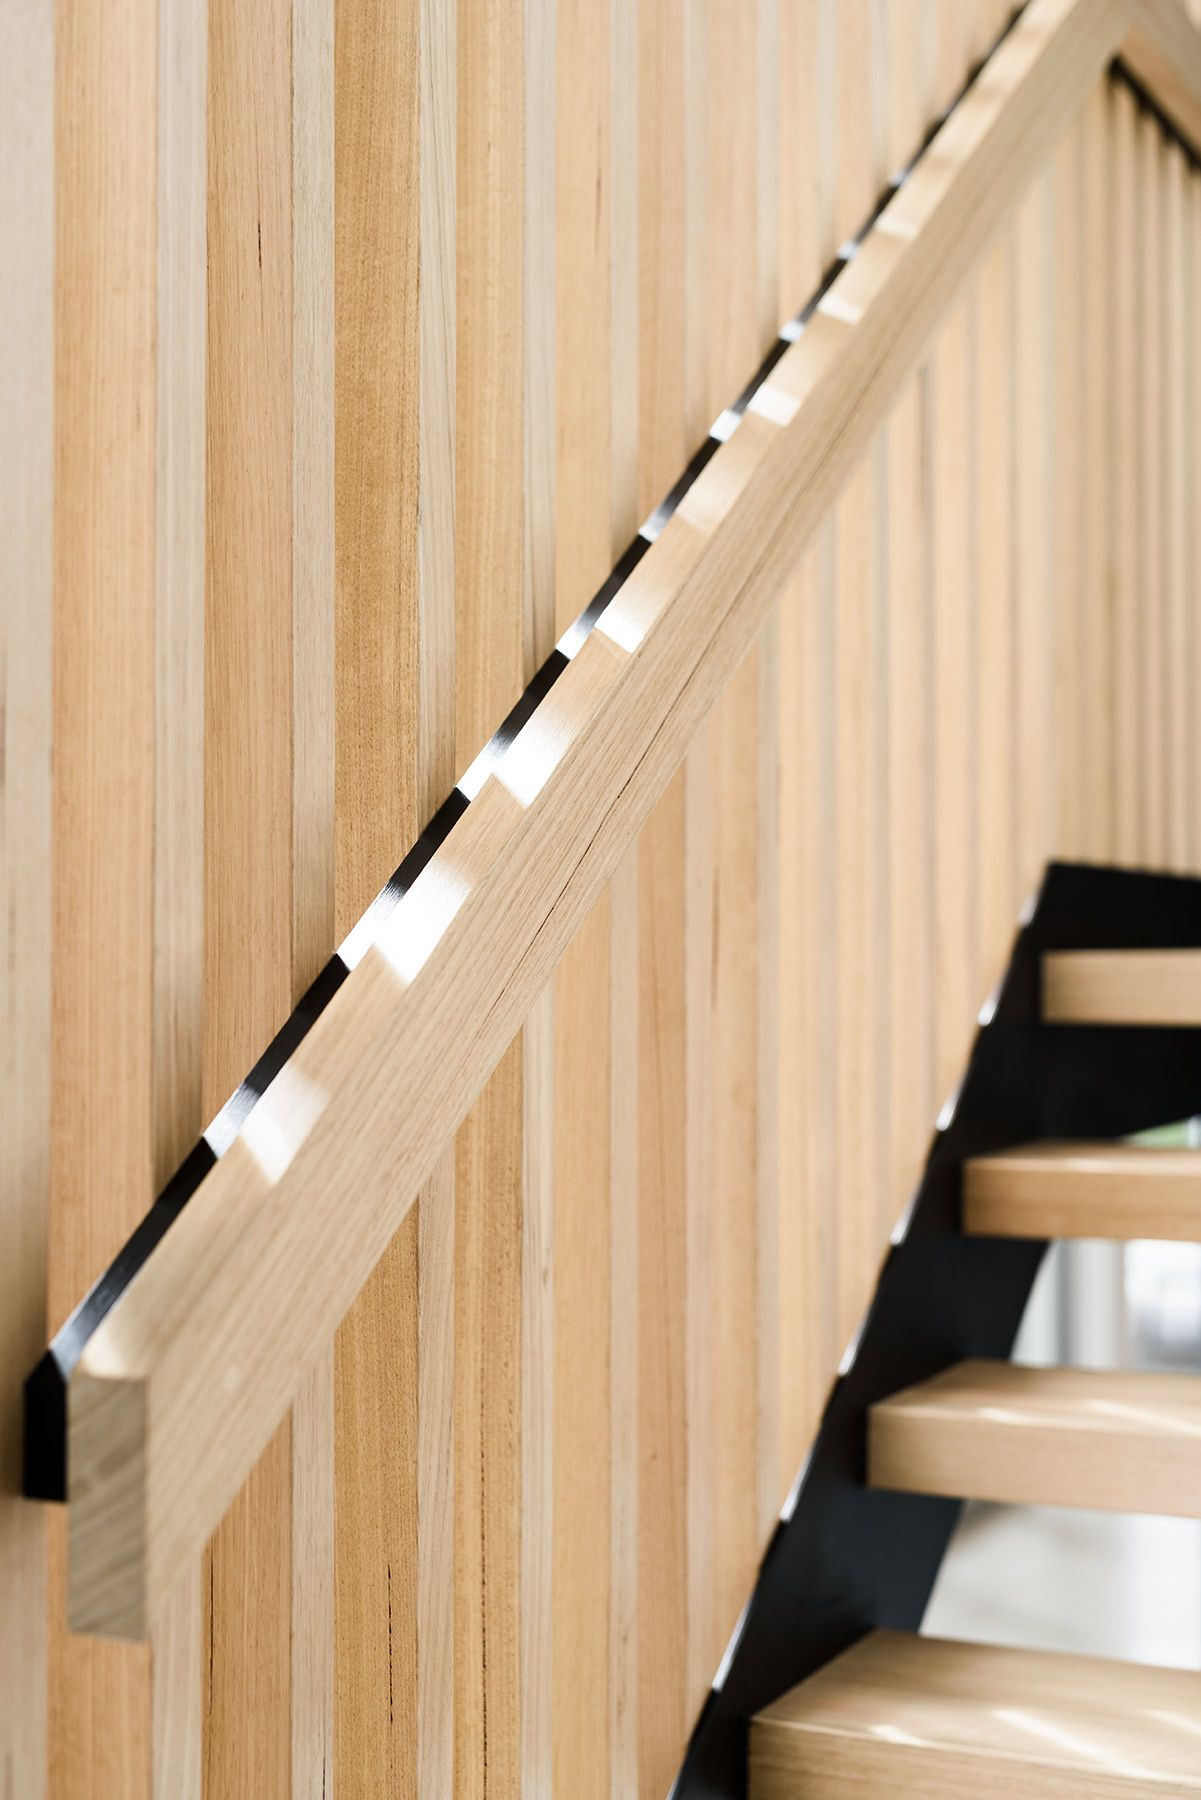 Stair | Treads | Victorian Ash | Balustrade | Feature | Contemporary |  Interior Design | Handrail | Open Staircase | Architecture